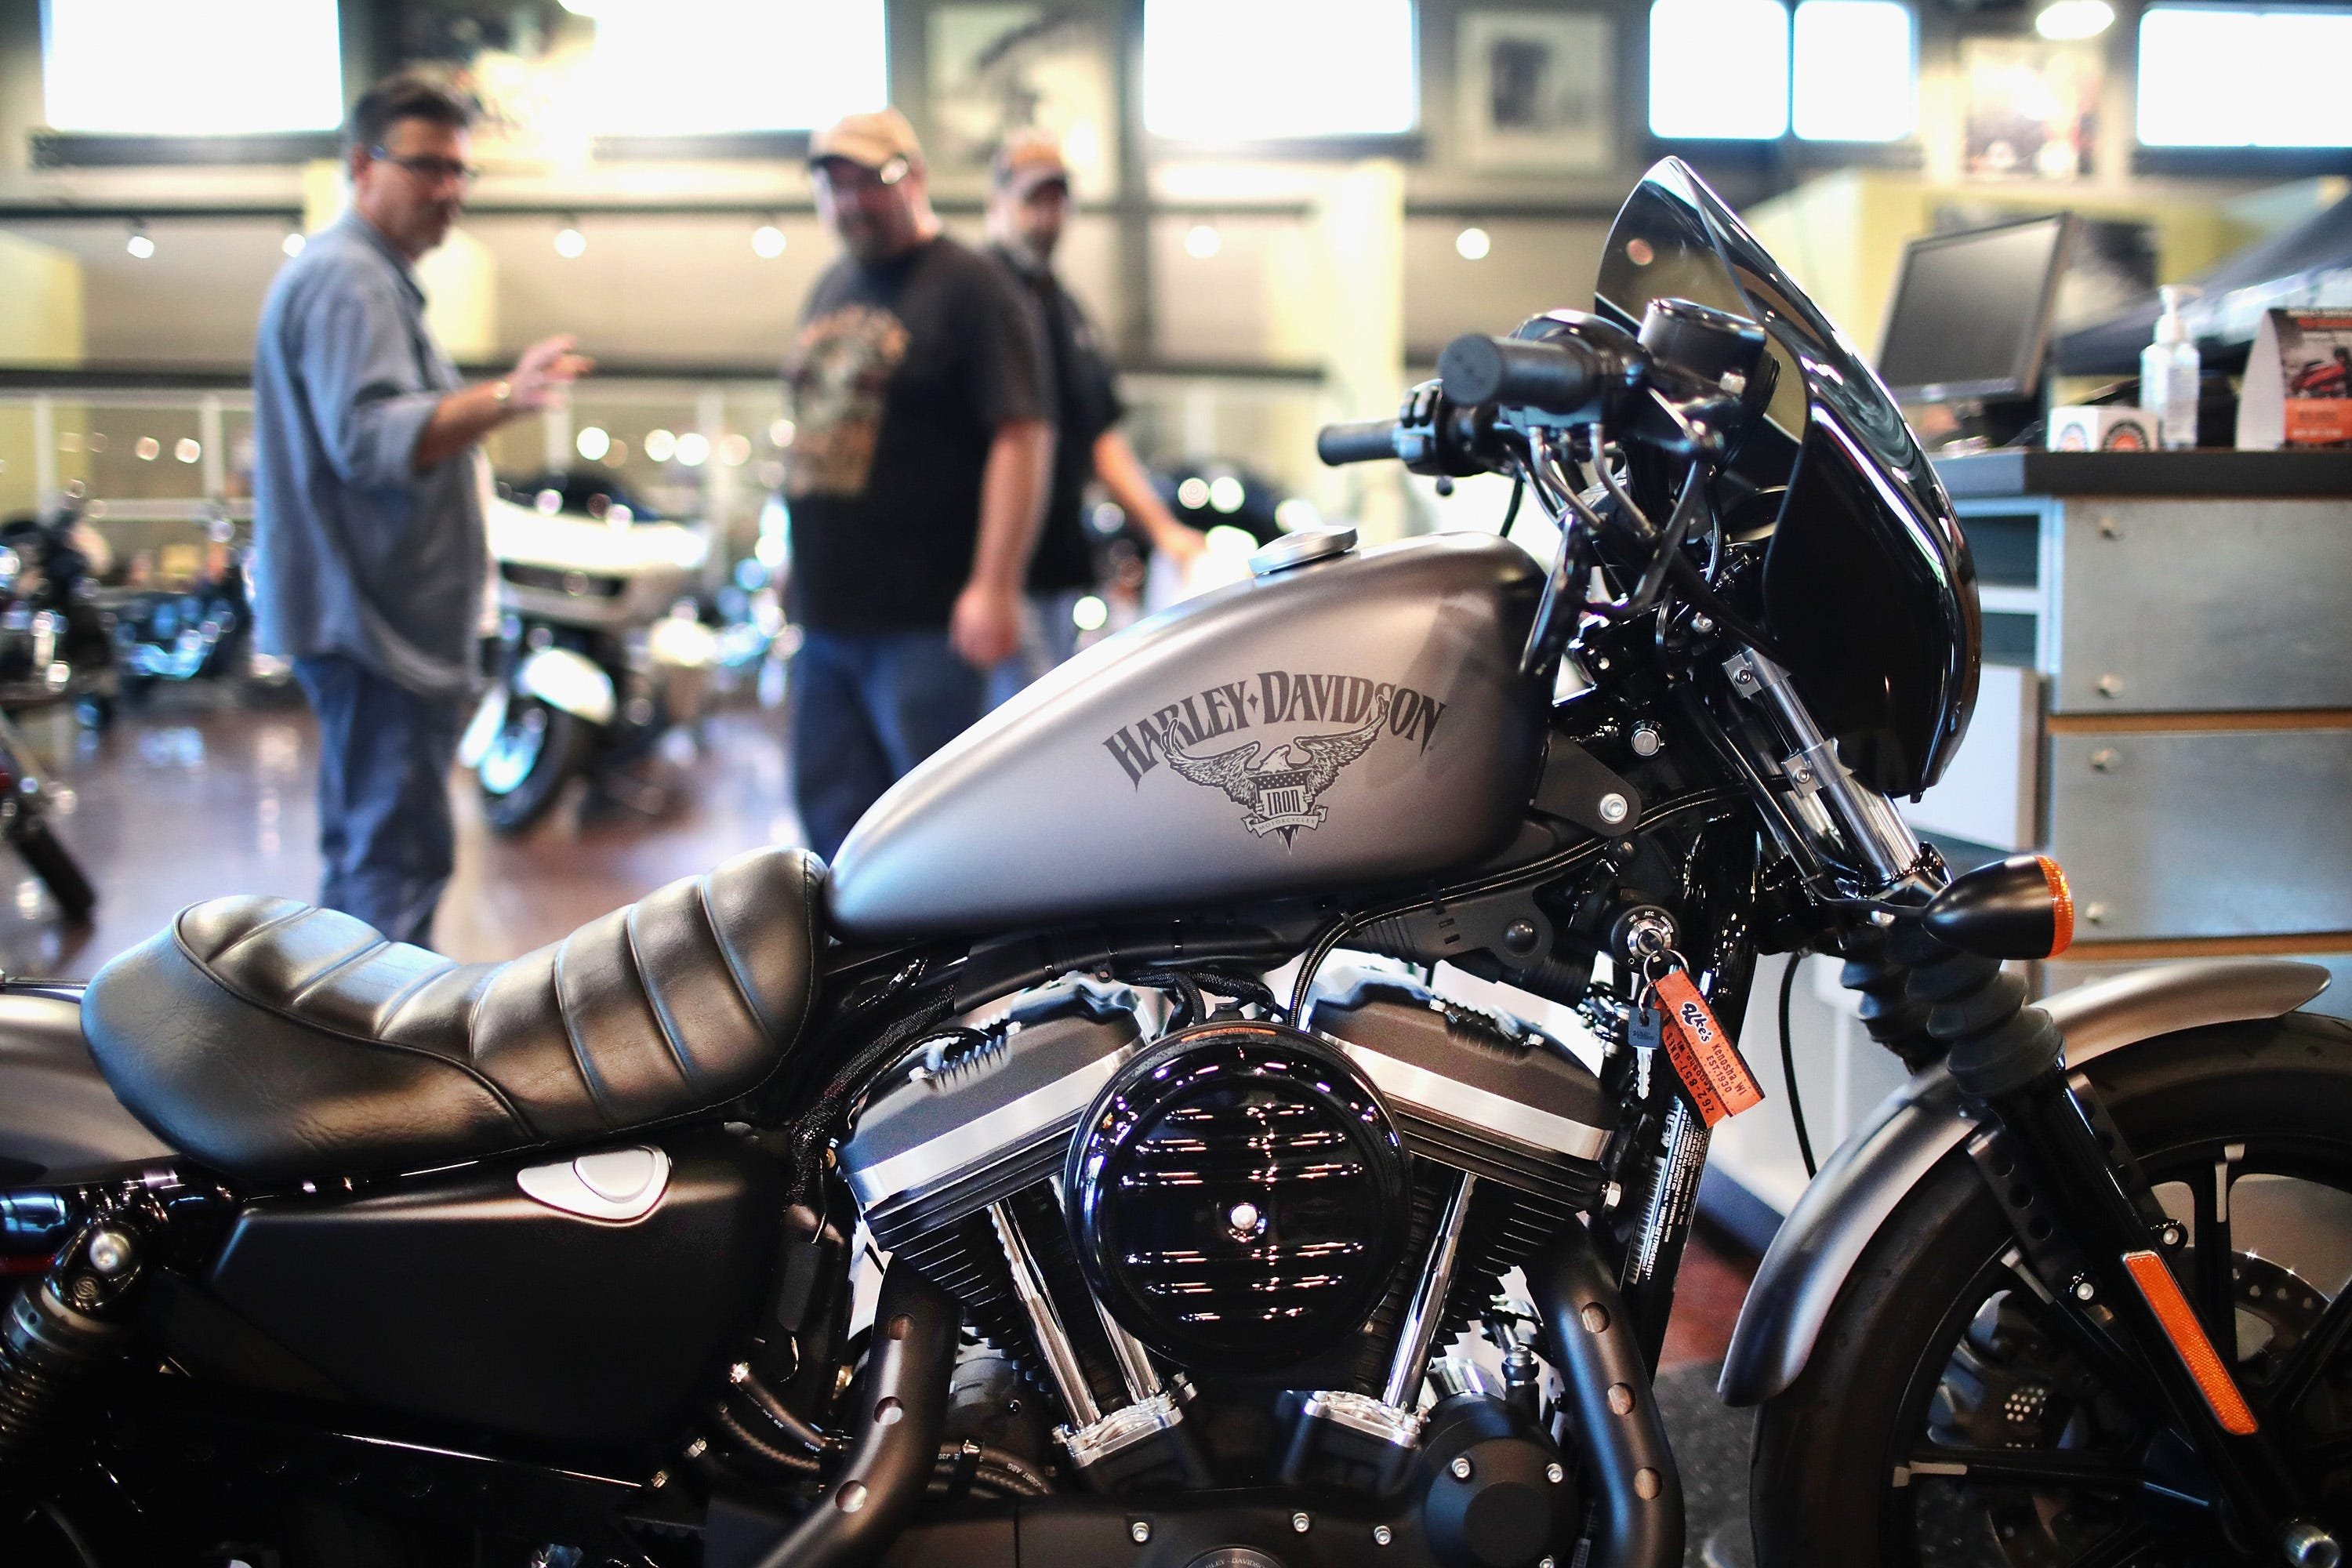 Harley-Davidson to move some motorcycle production out of U.S. after EU tariffs